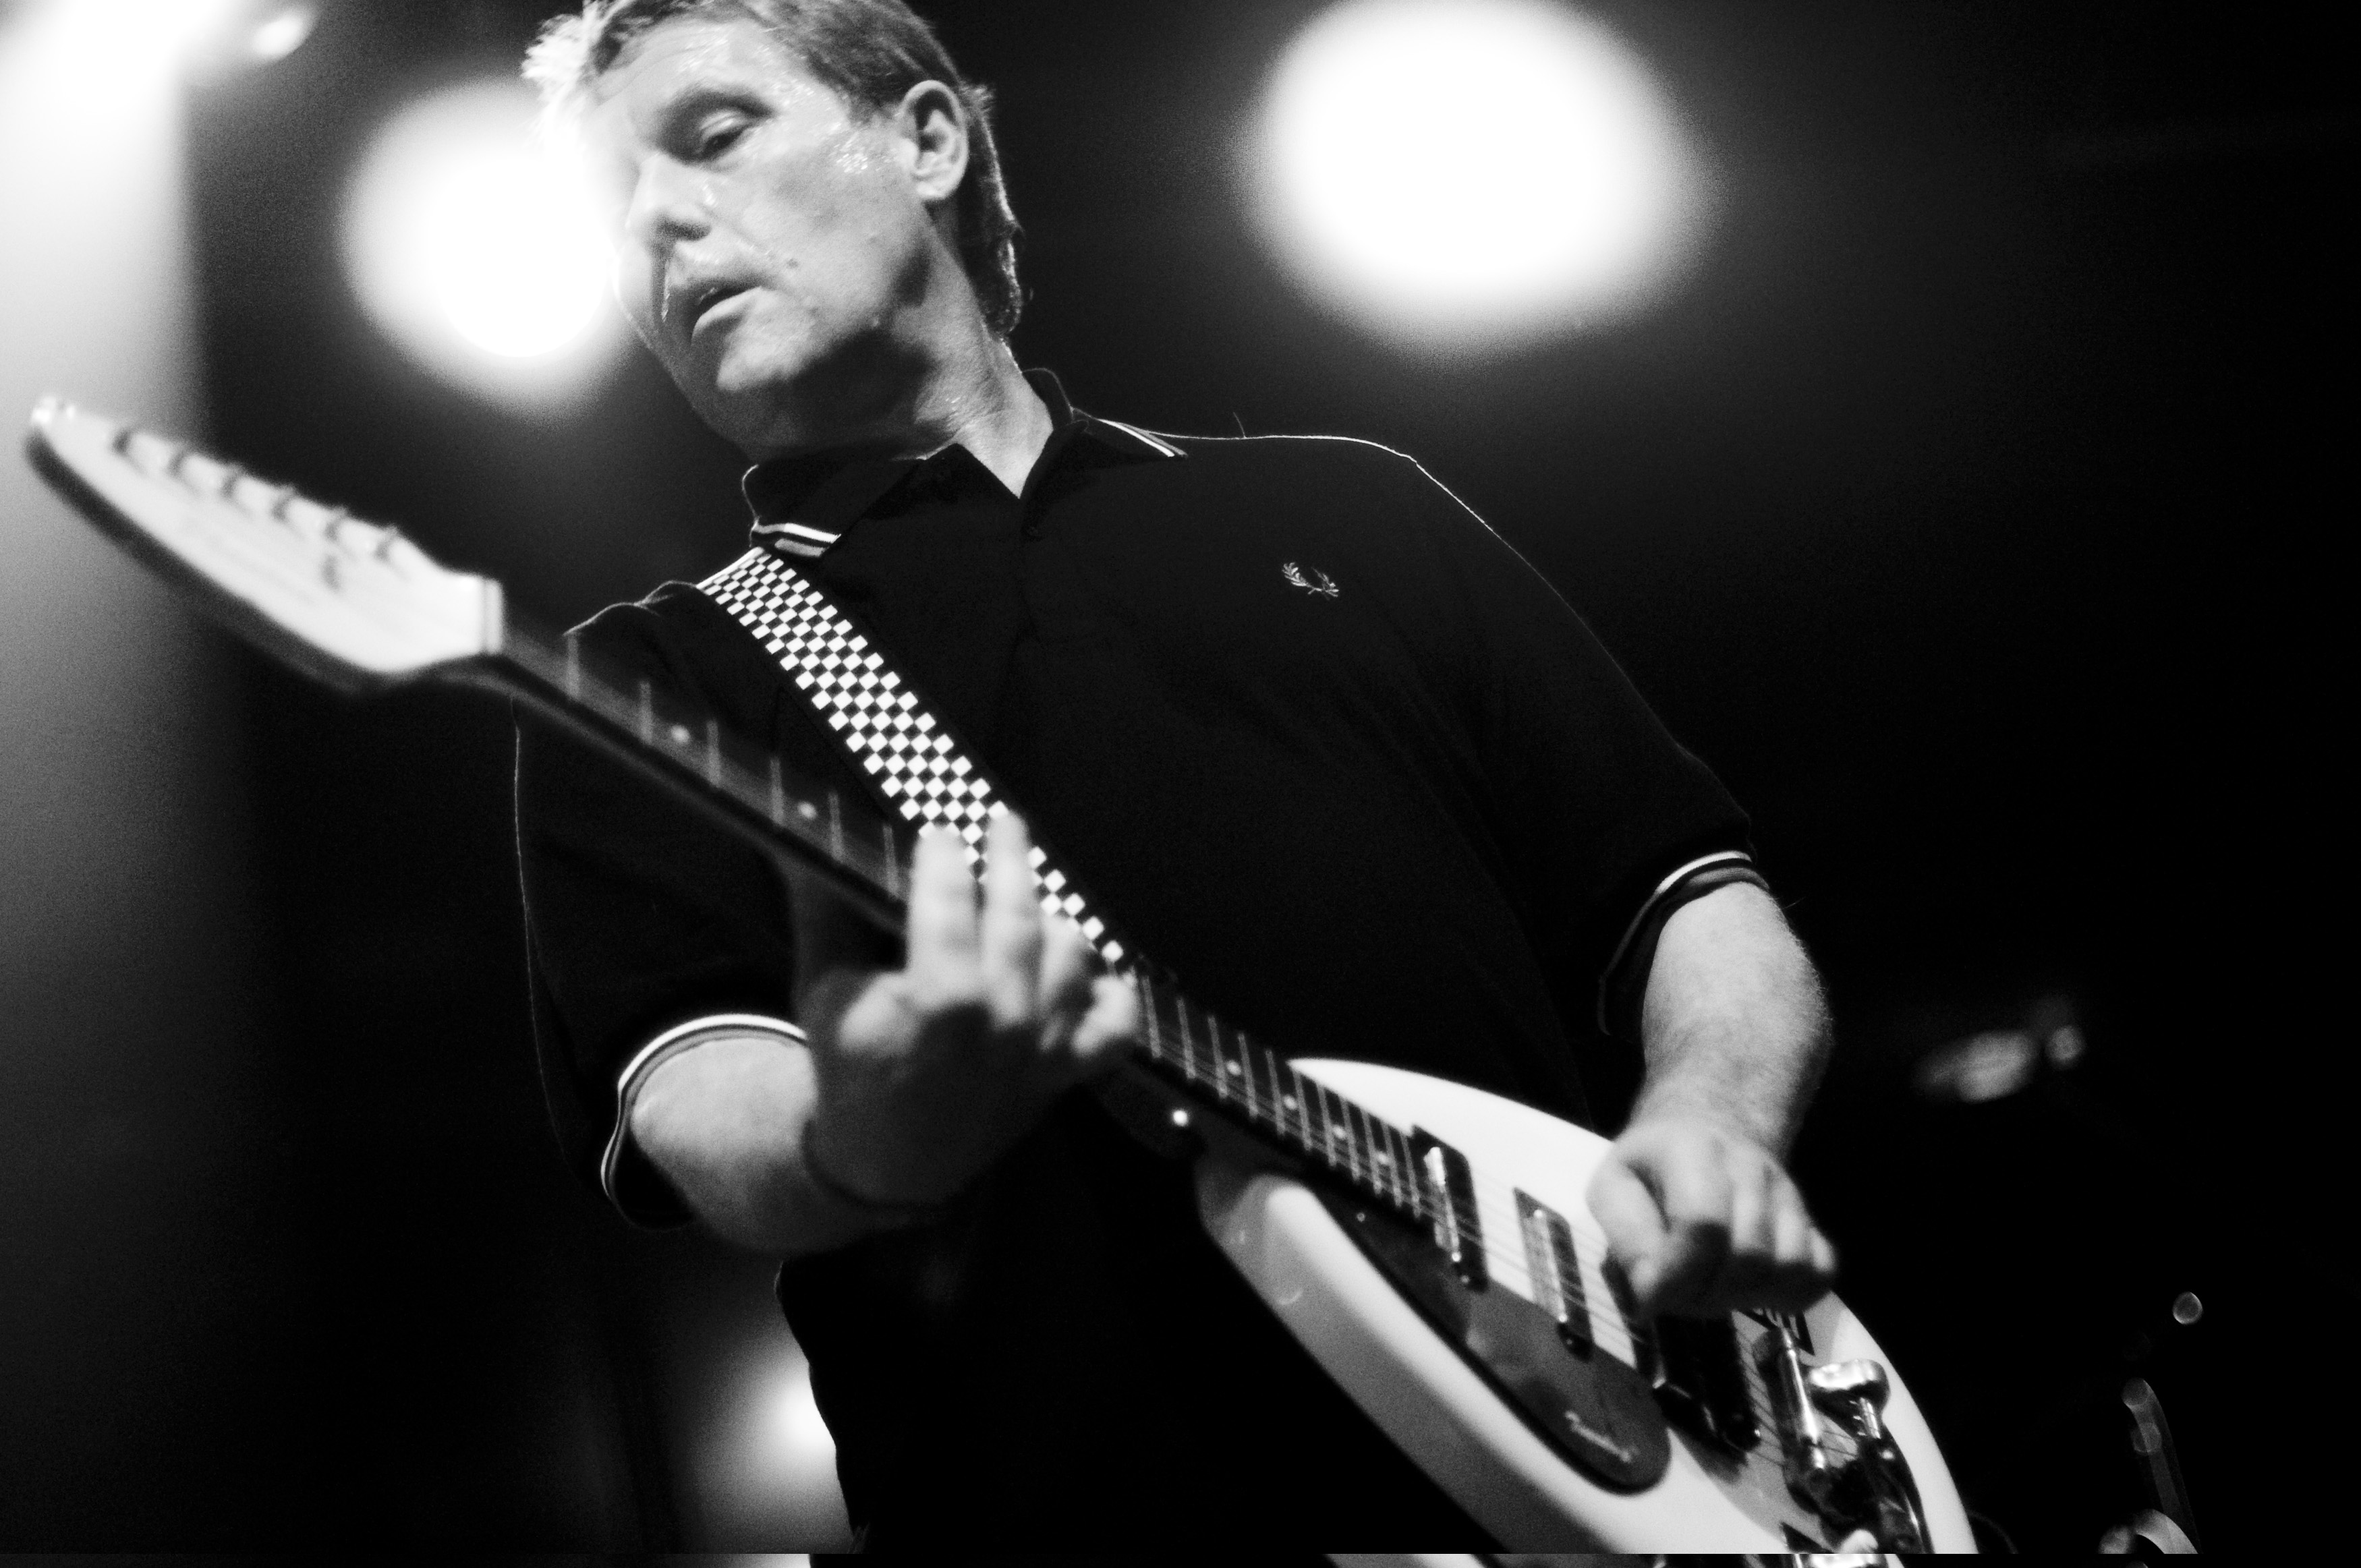 ENGLISH BEAT SHOW AT CITY WINERY 'RANKS' HIGH